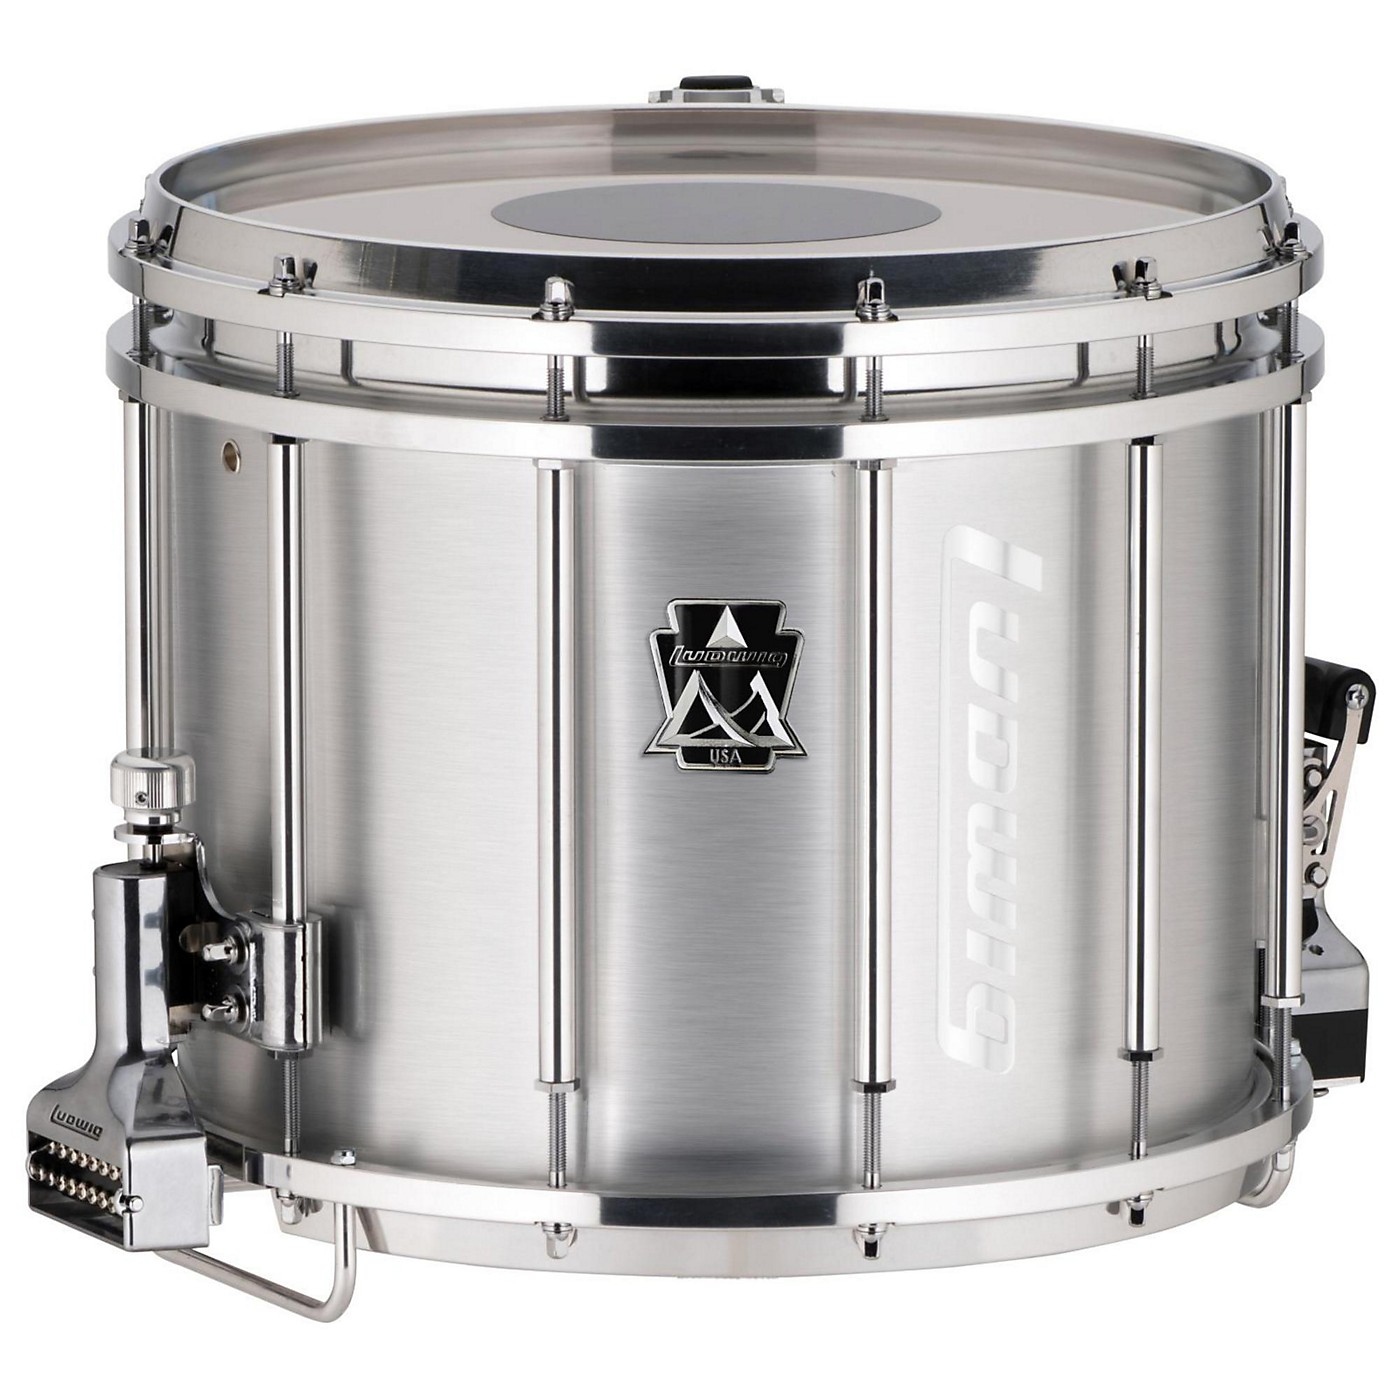 Ludwig 14 x 12 in. Ultimate Marching Snare Drum, 14 x 12 in., Silver thumbnail